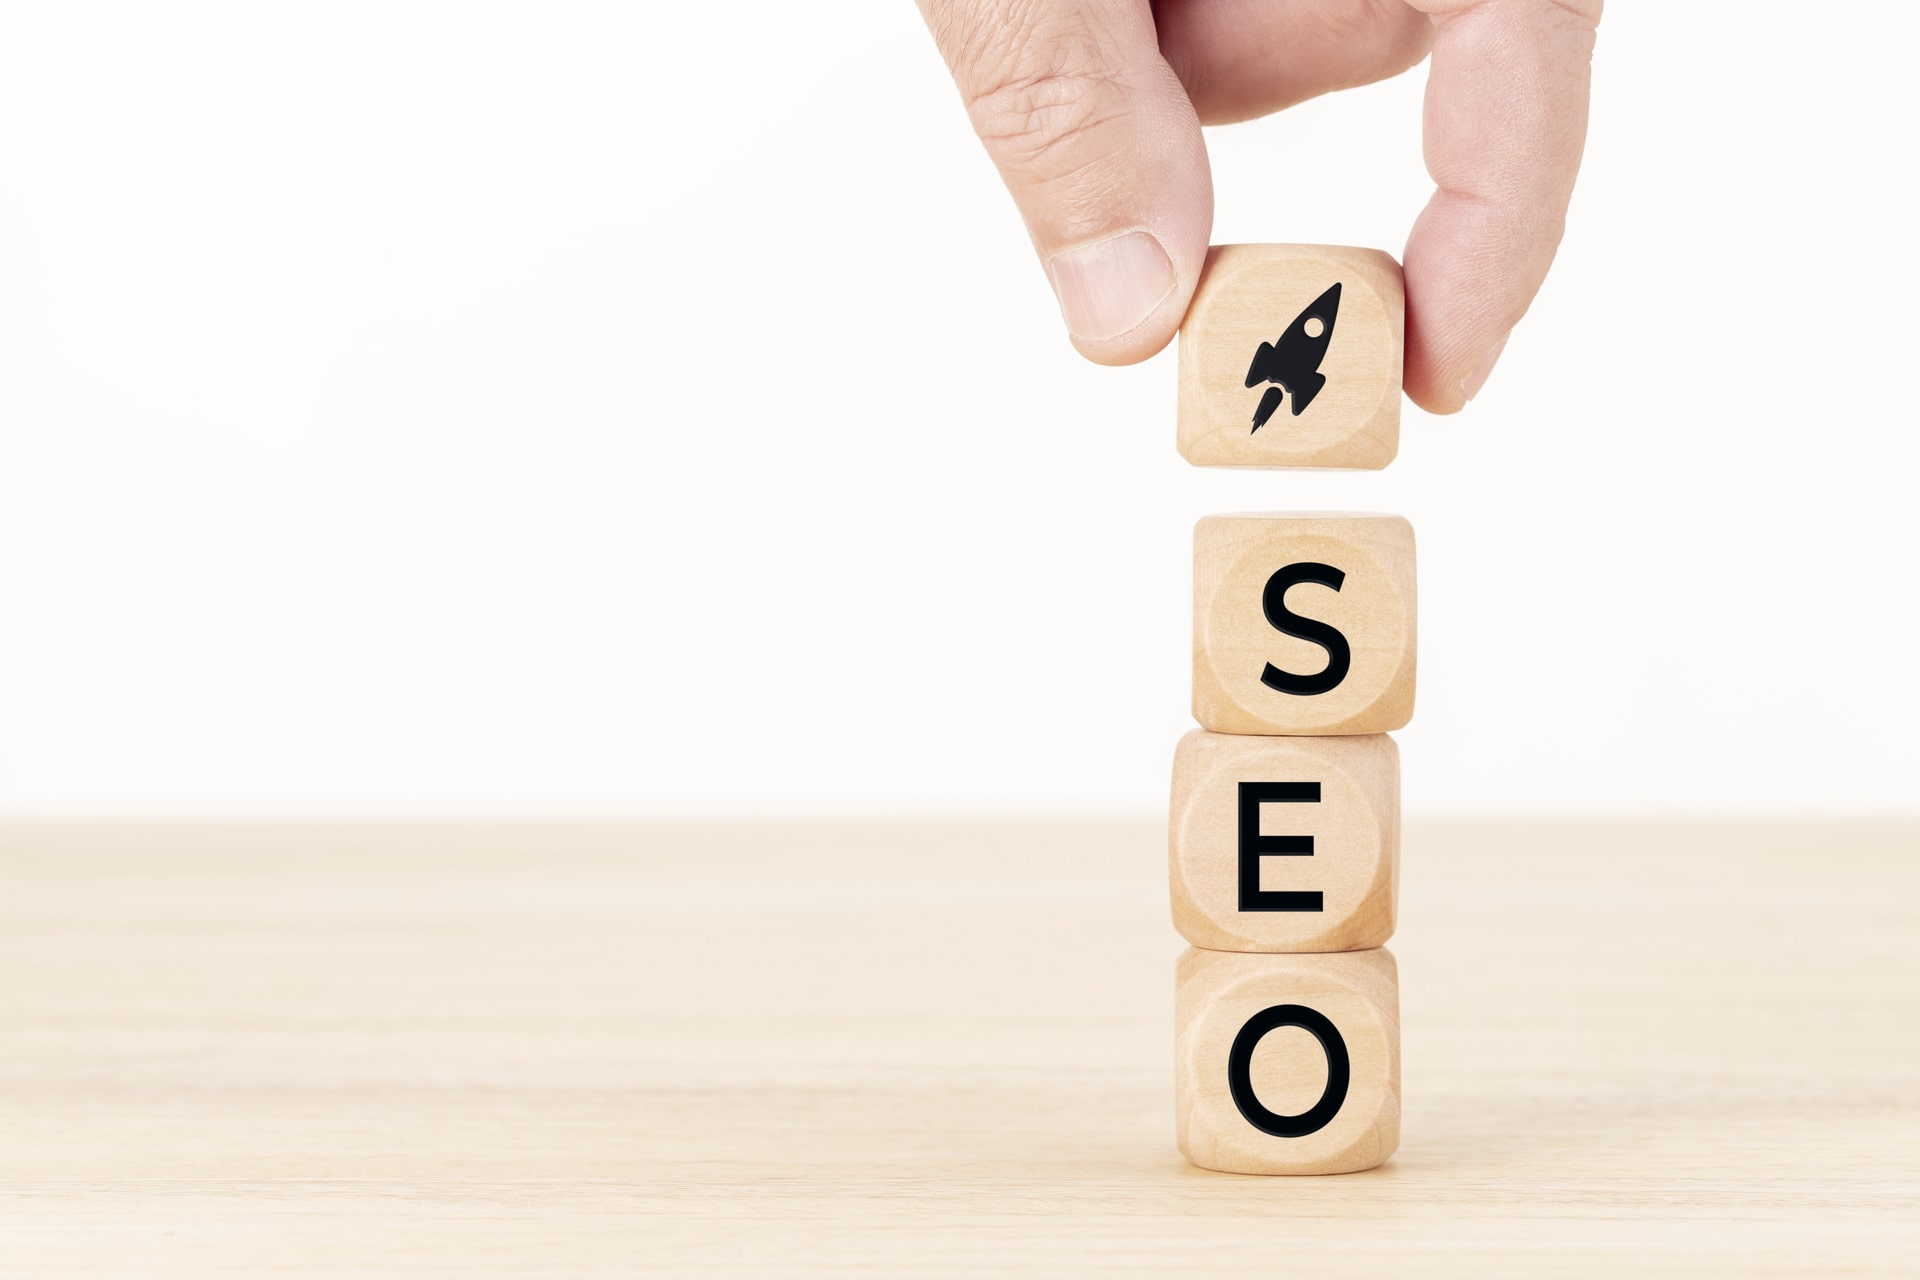 Human Hand Holding a Wooden block with Rocket Icon and SEO Word.